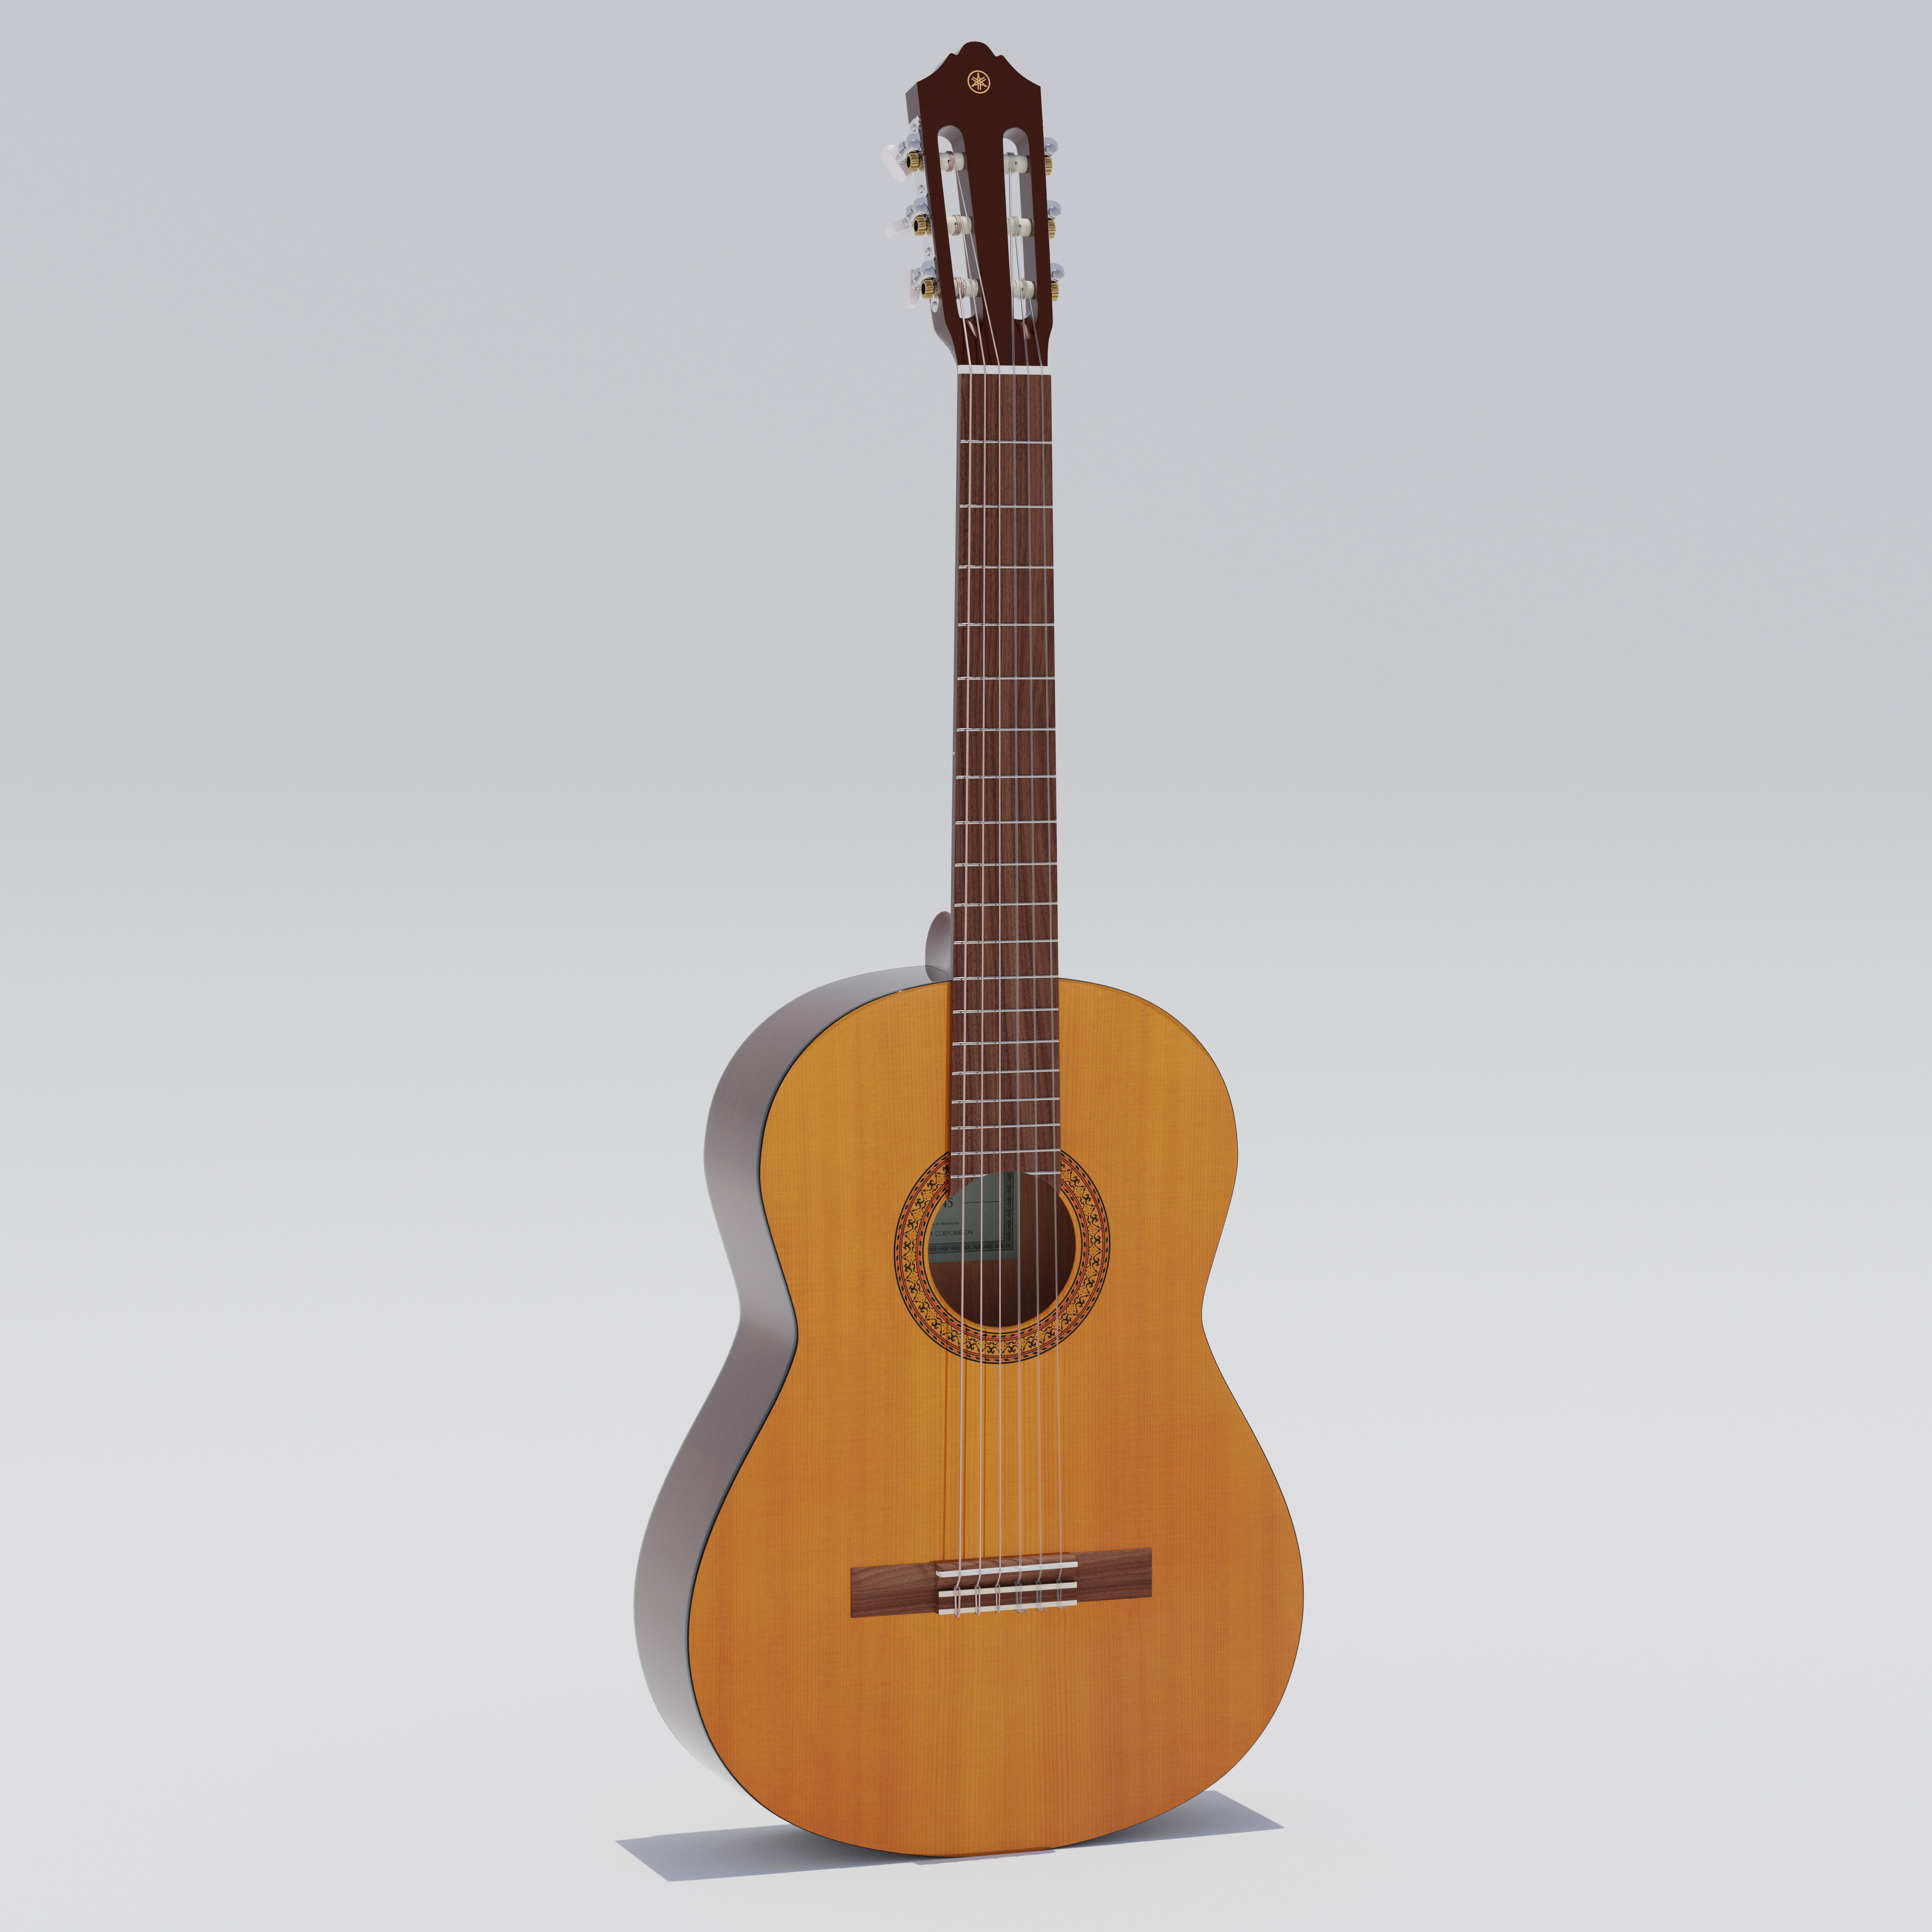 Acoustic guitar Yamaha preview image 1